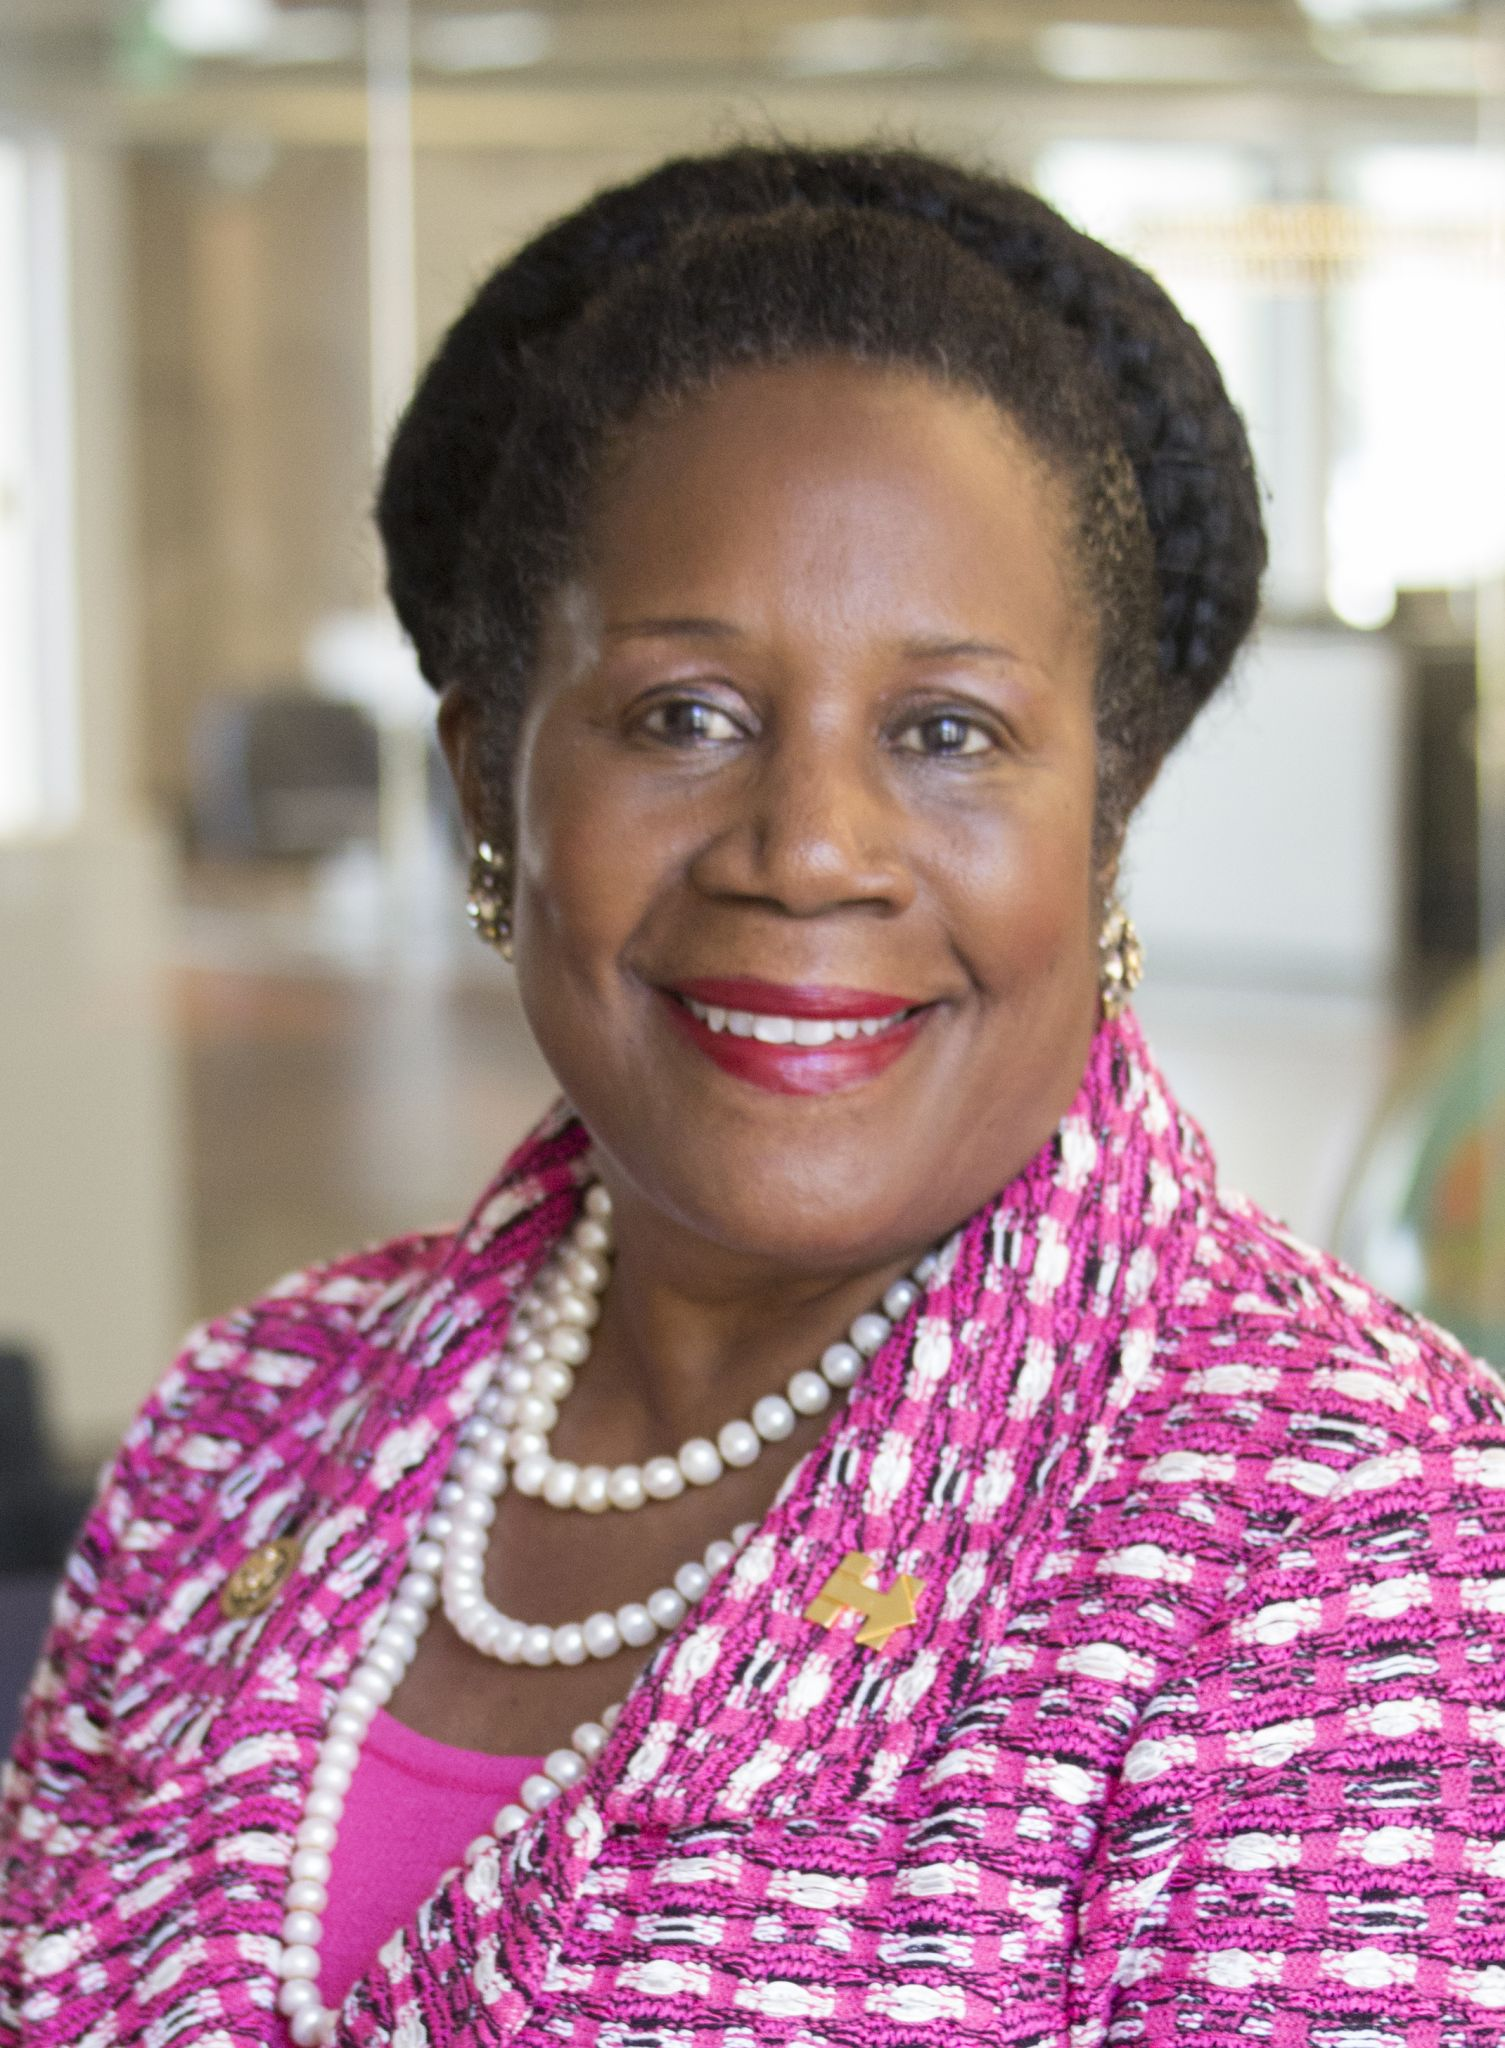 For The 18th Congressional District Sheila Jackson Lee